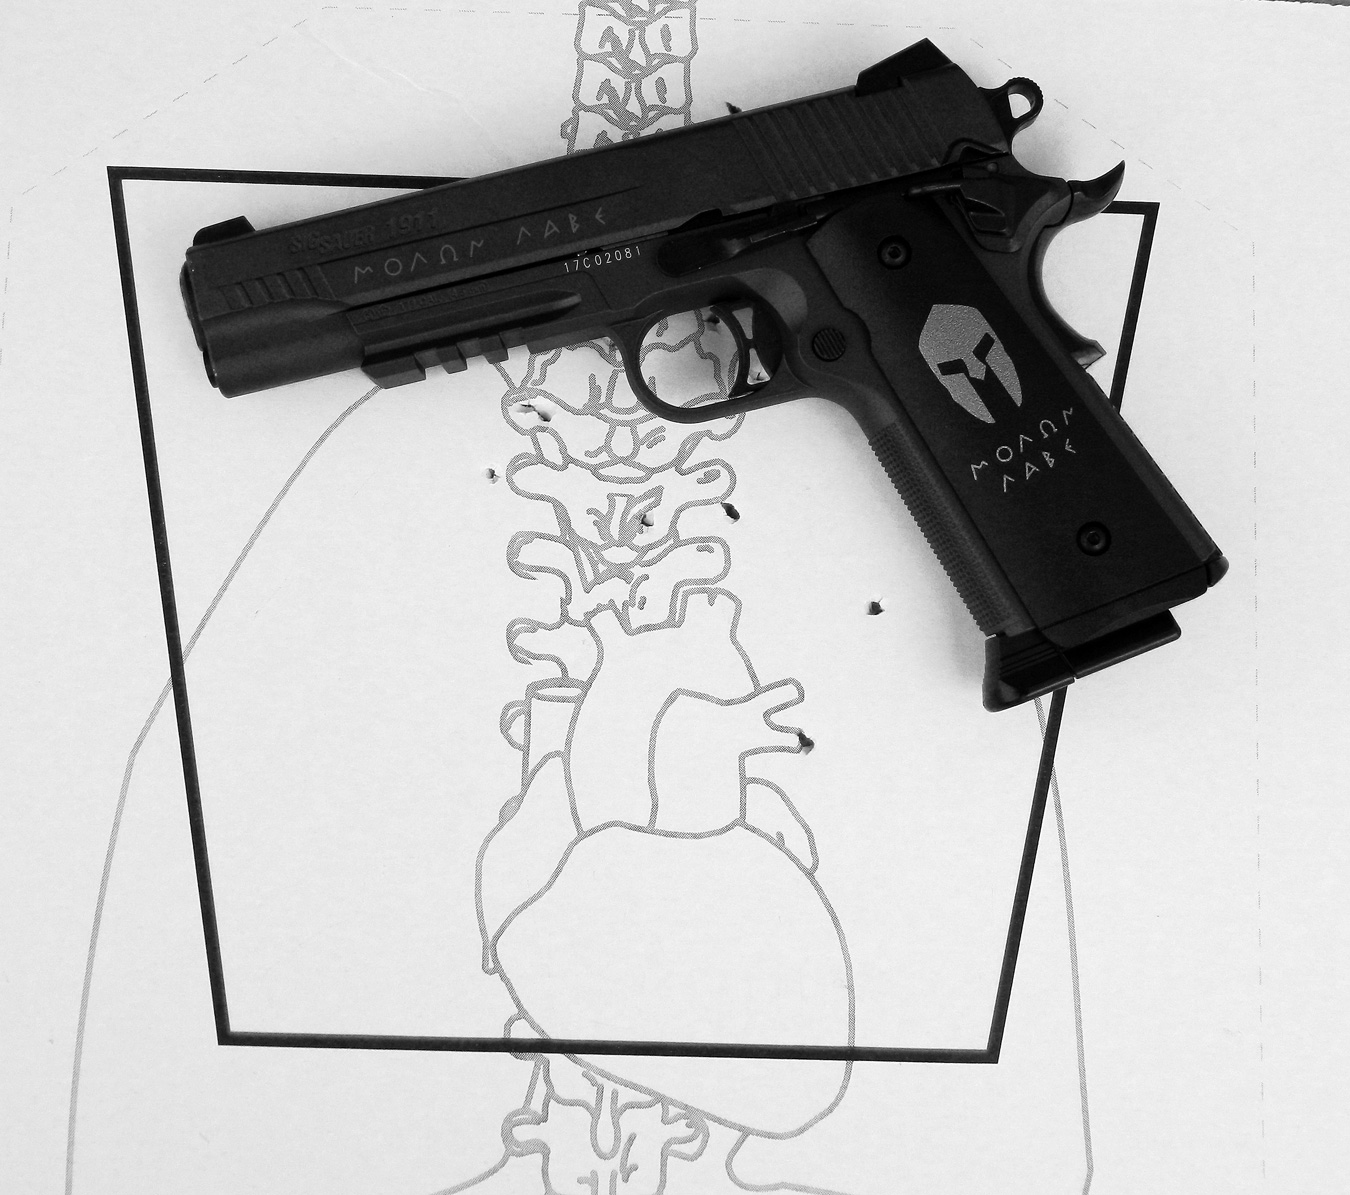 SIG Sauer Spartan Airgun on anatomy target